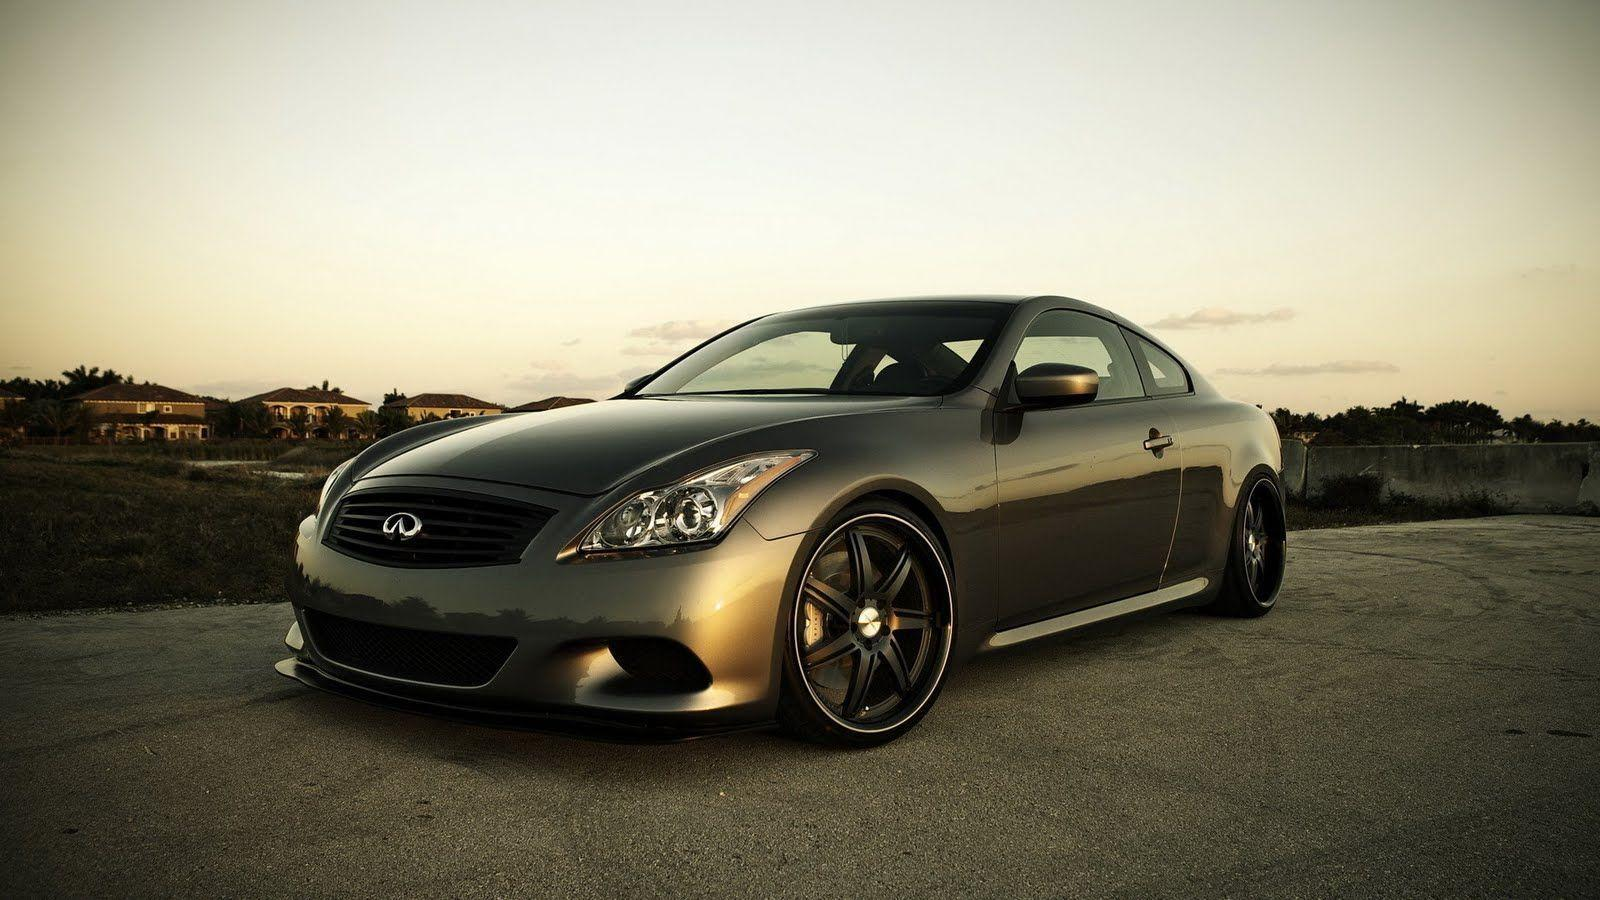 Infiniti G35 Car Wide Wallpaper | hdwallpapers-